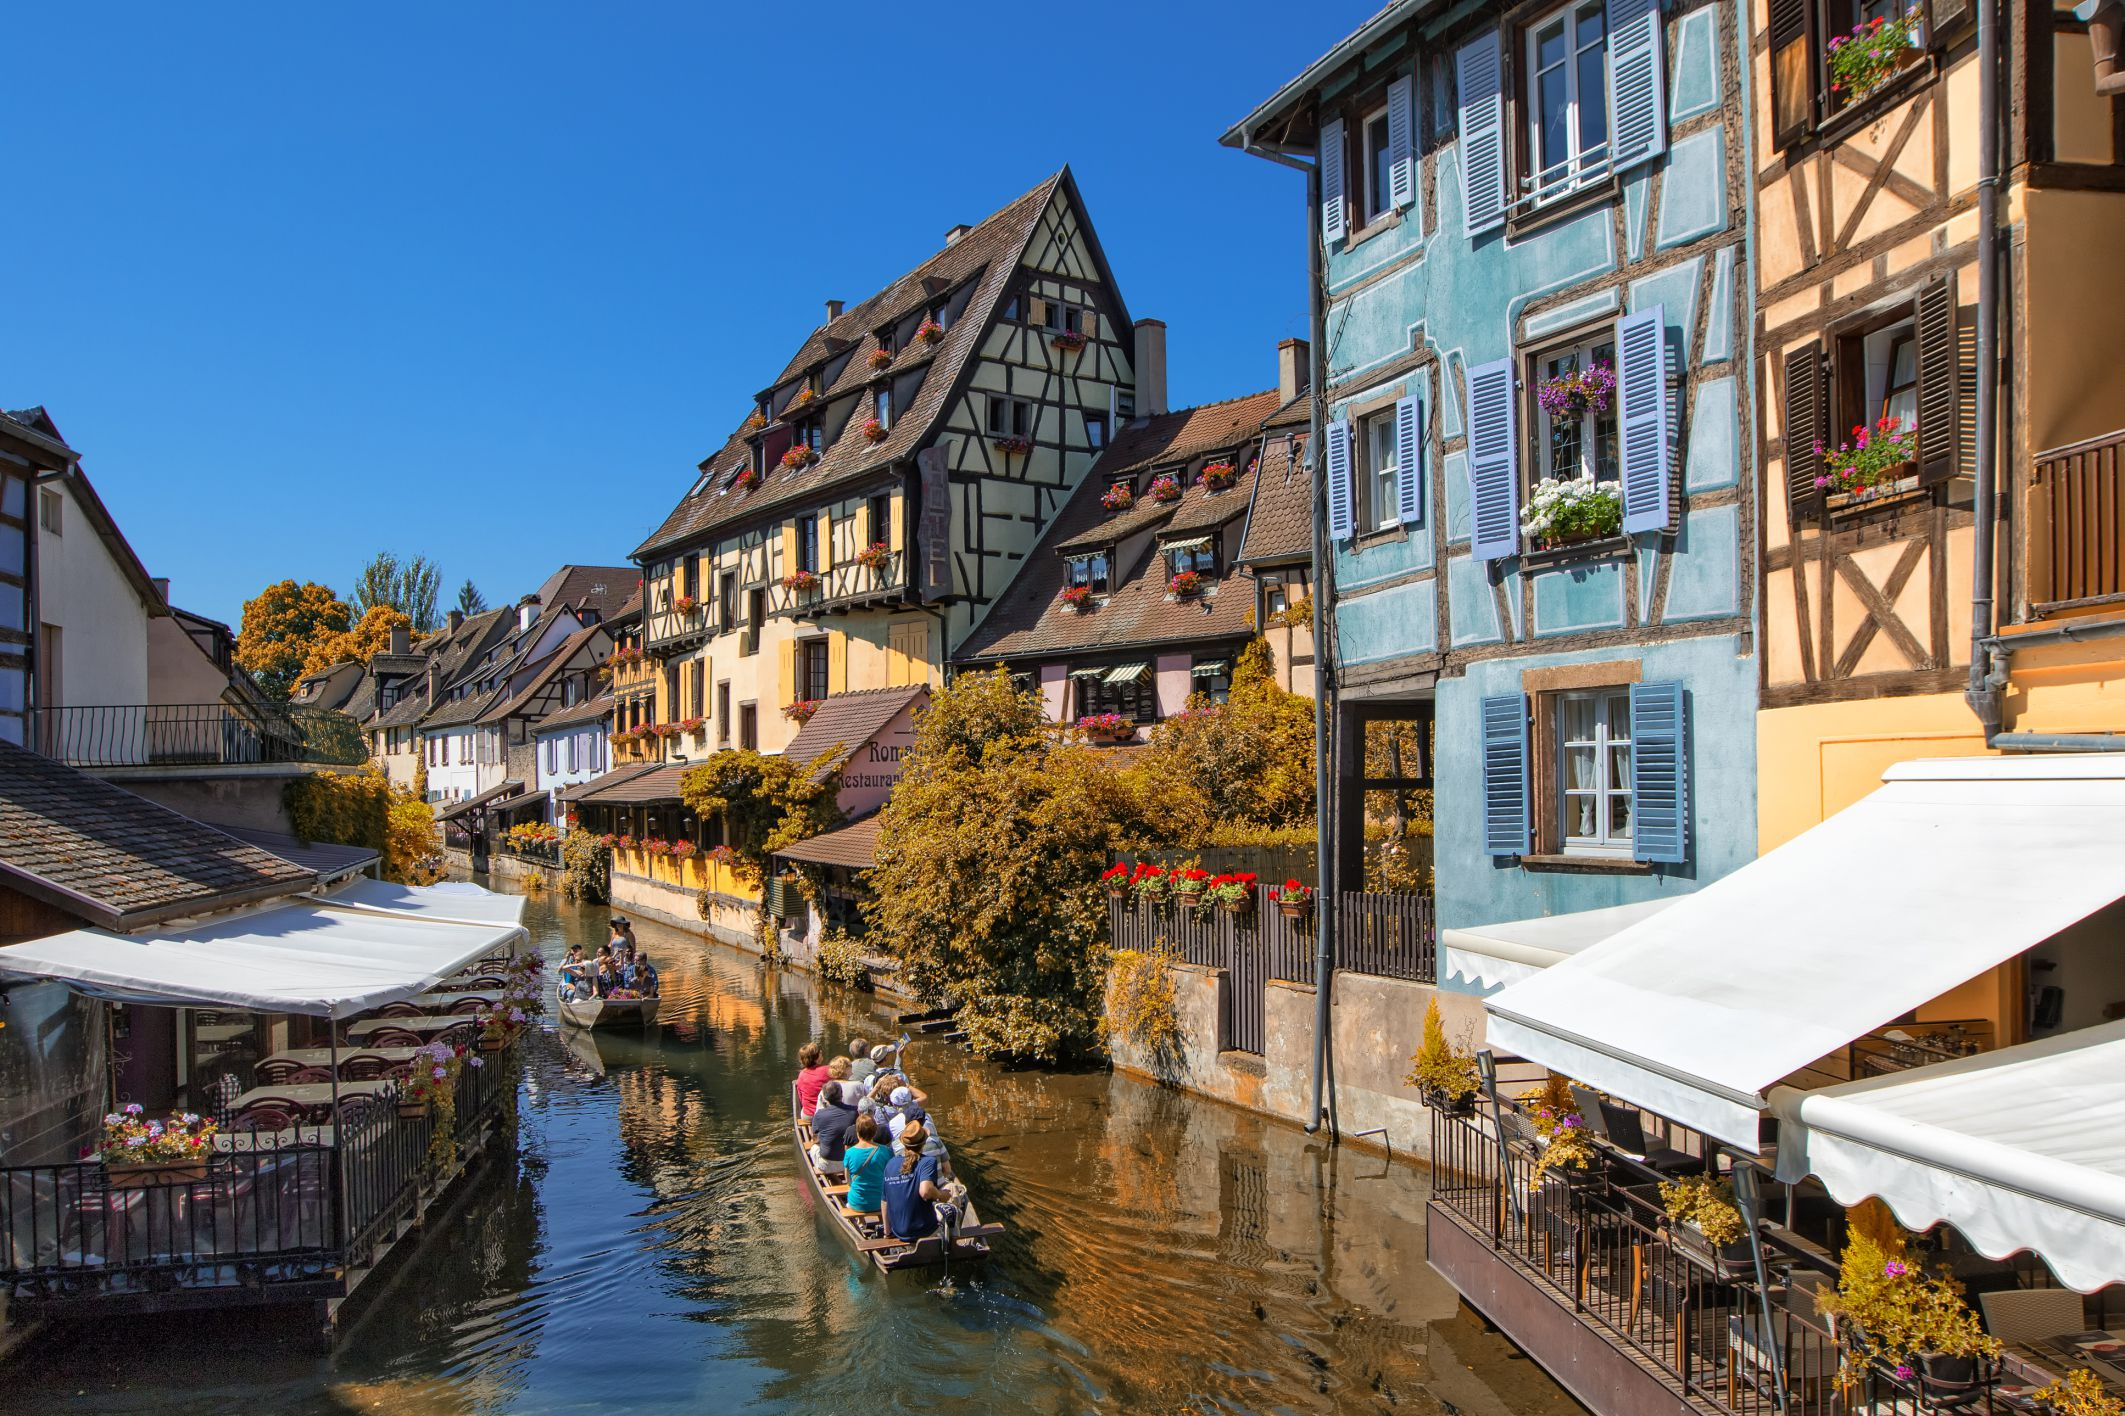 Virtual Tour of Colmar in Alsace France